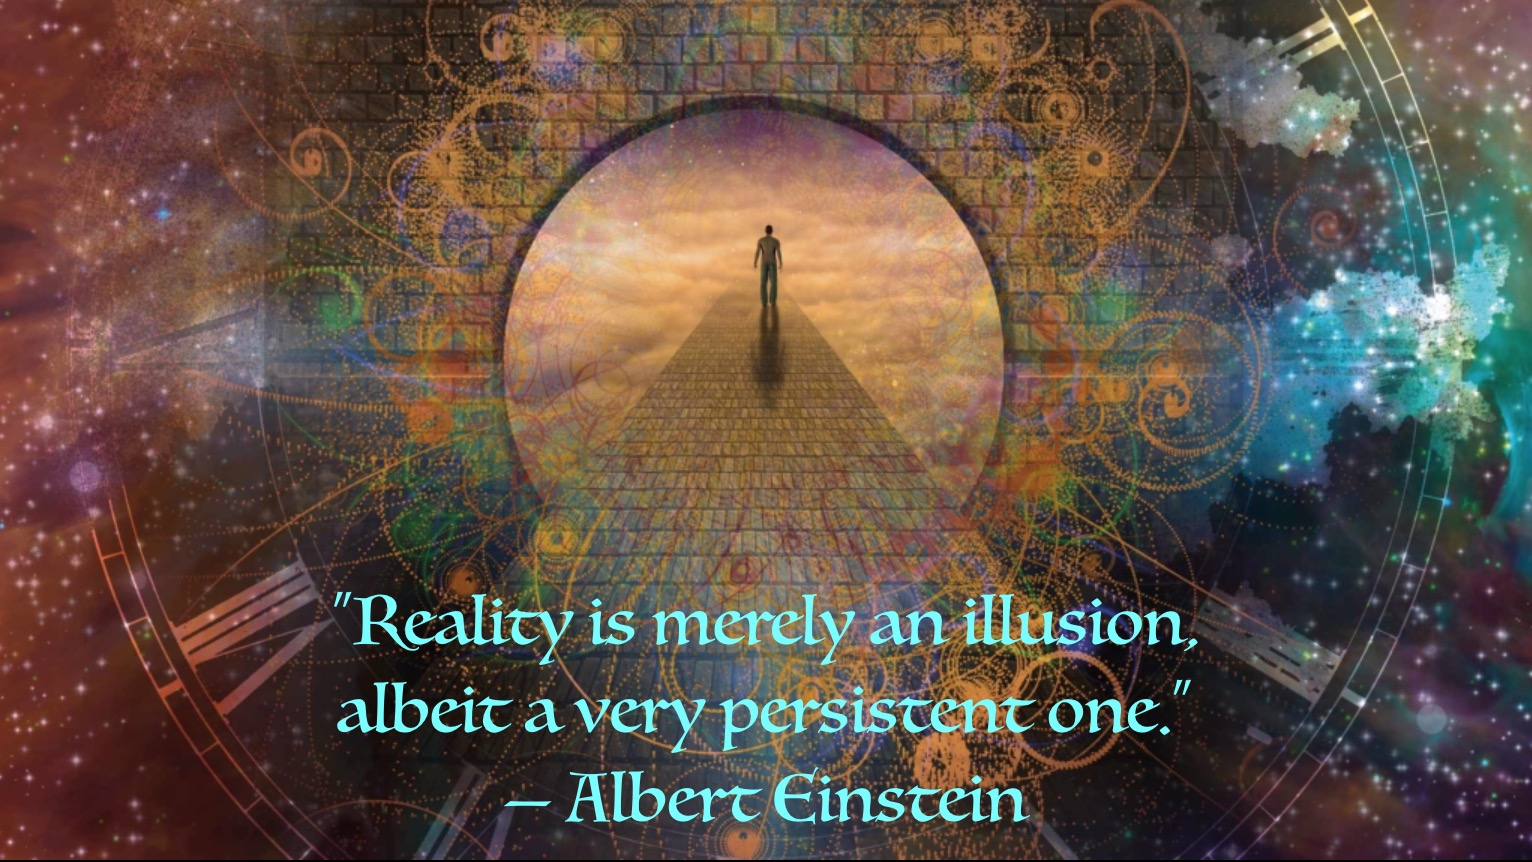 On Existence